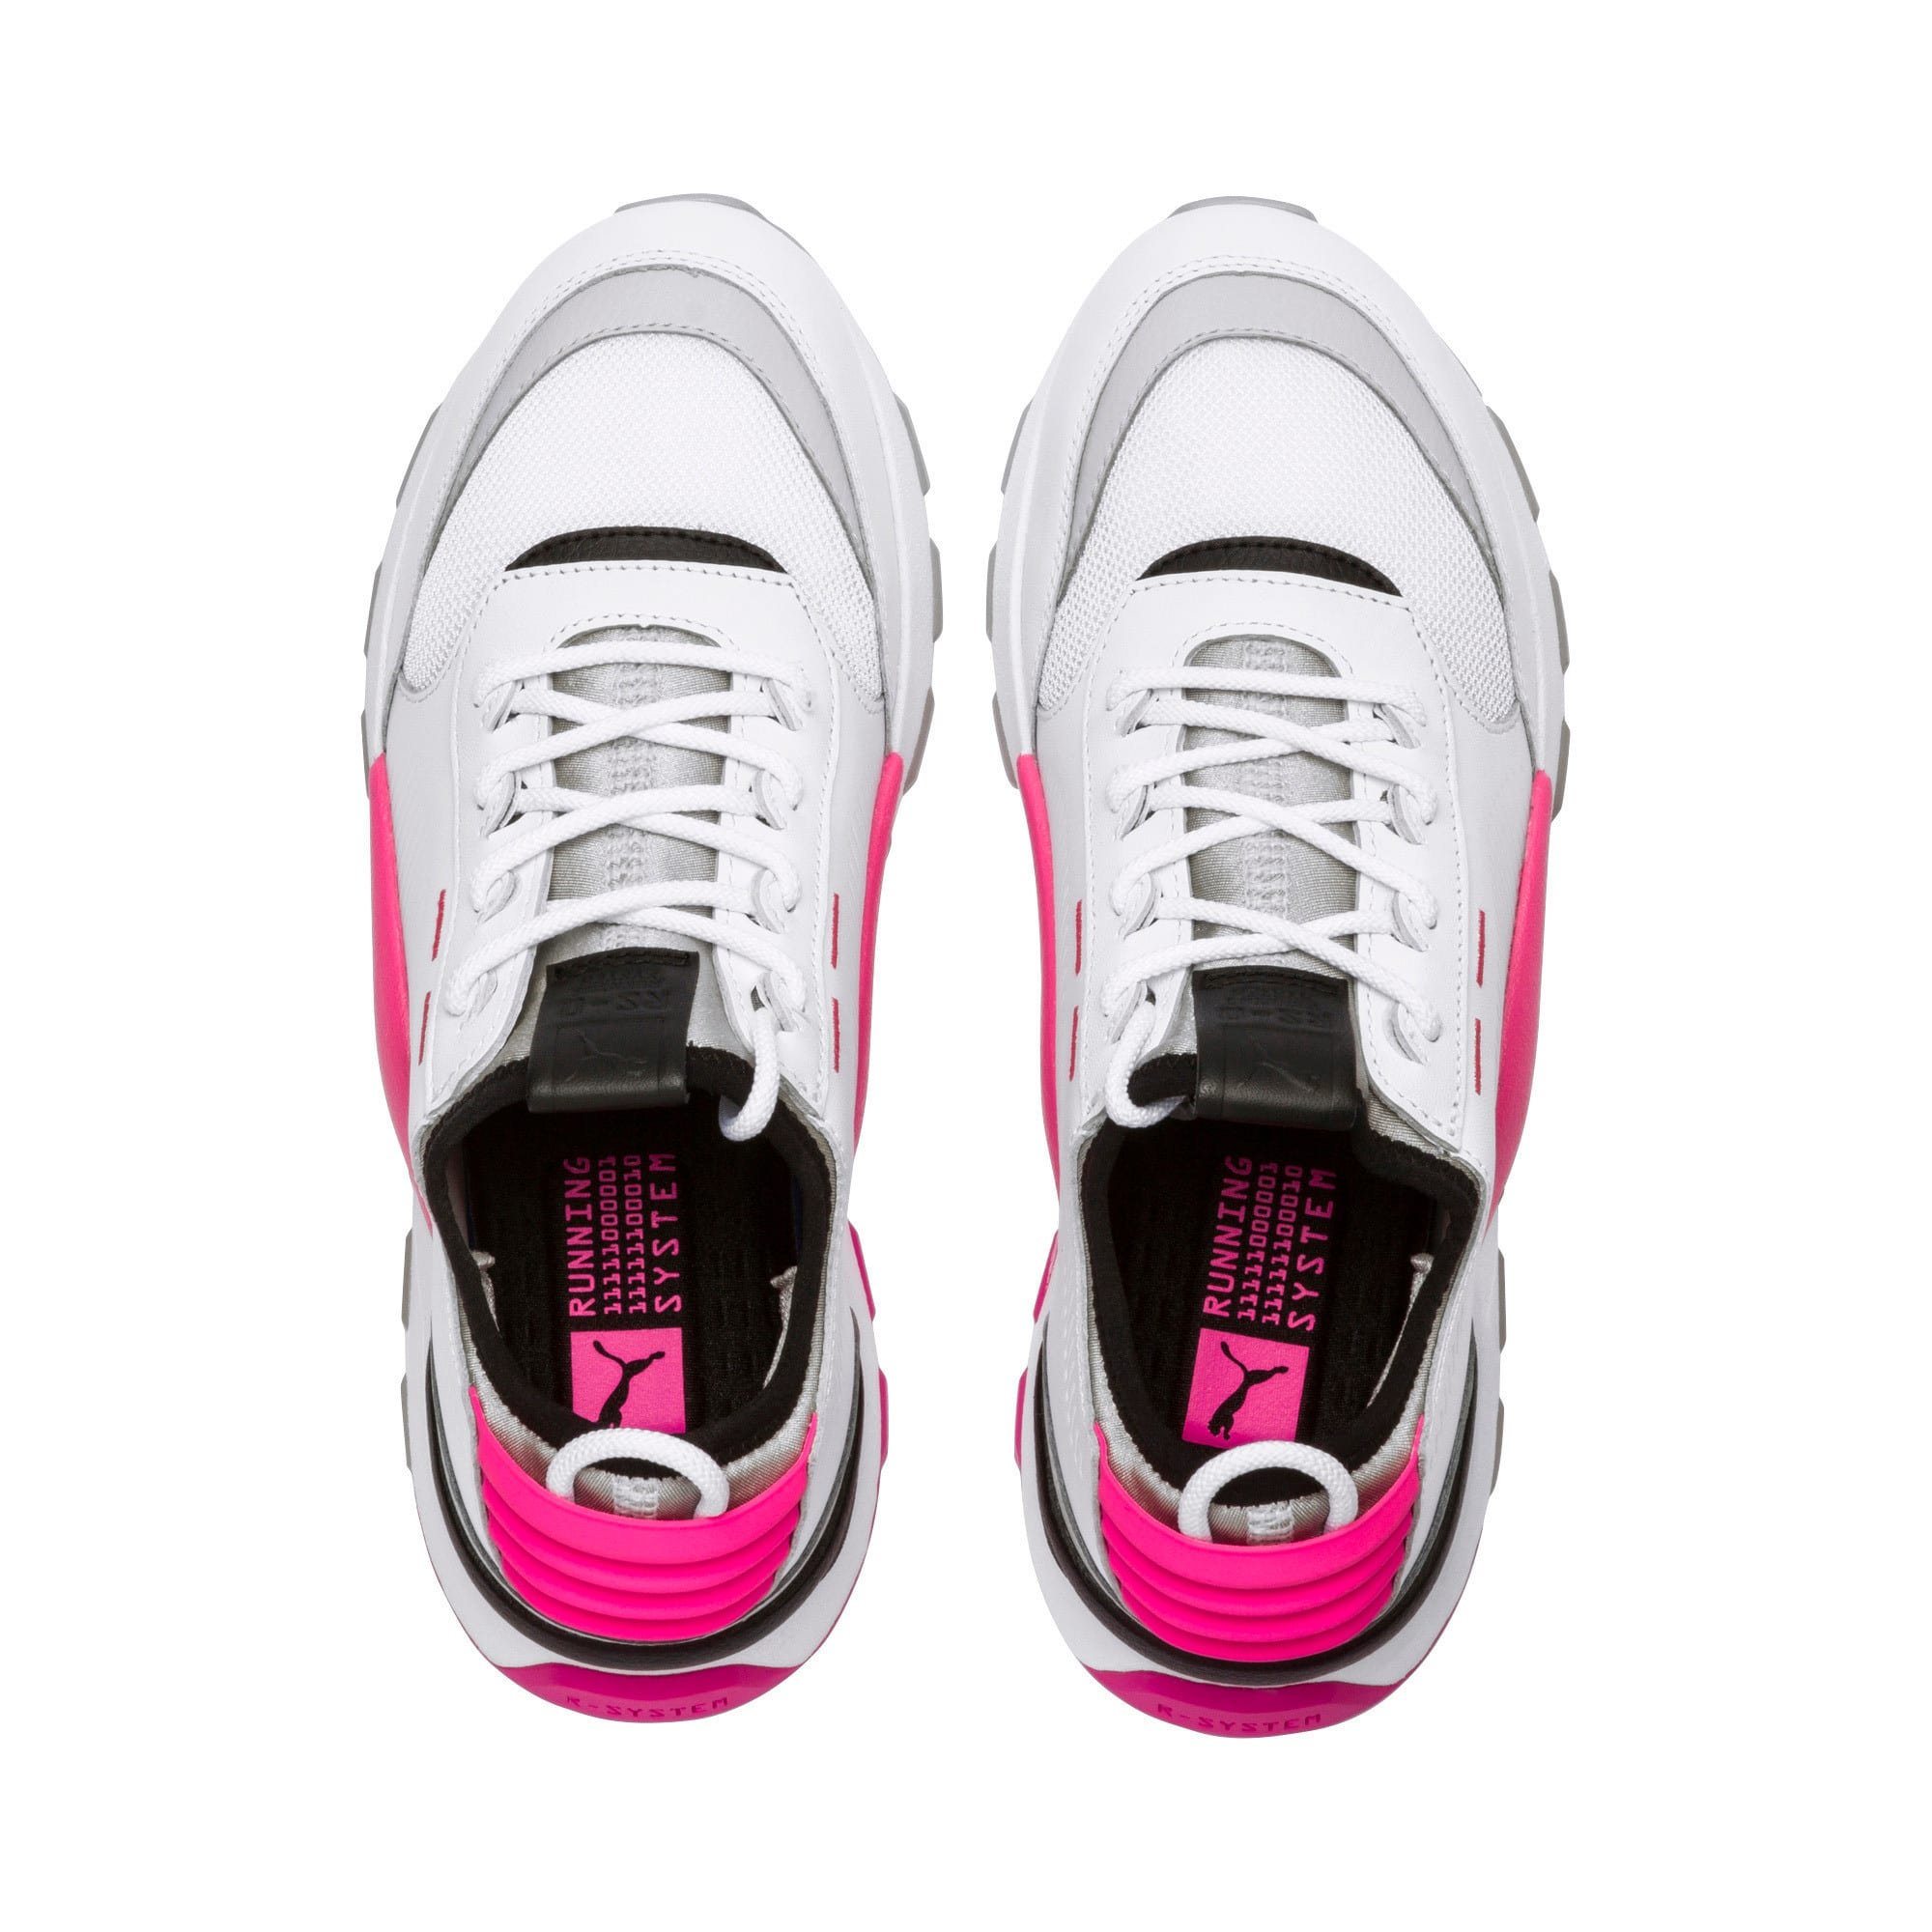 Thumbnail 3 of Evolution RS-0 SOUND Trainers, Wht-GrayViolet-KNOCKOUTPINK, medium-IND